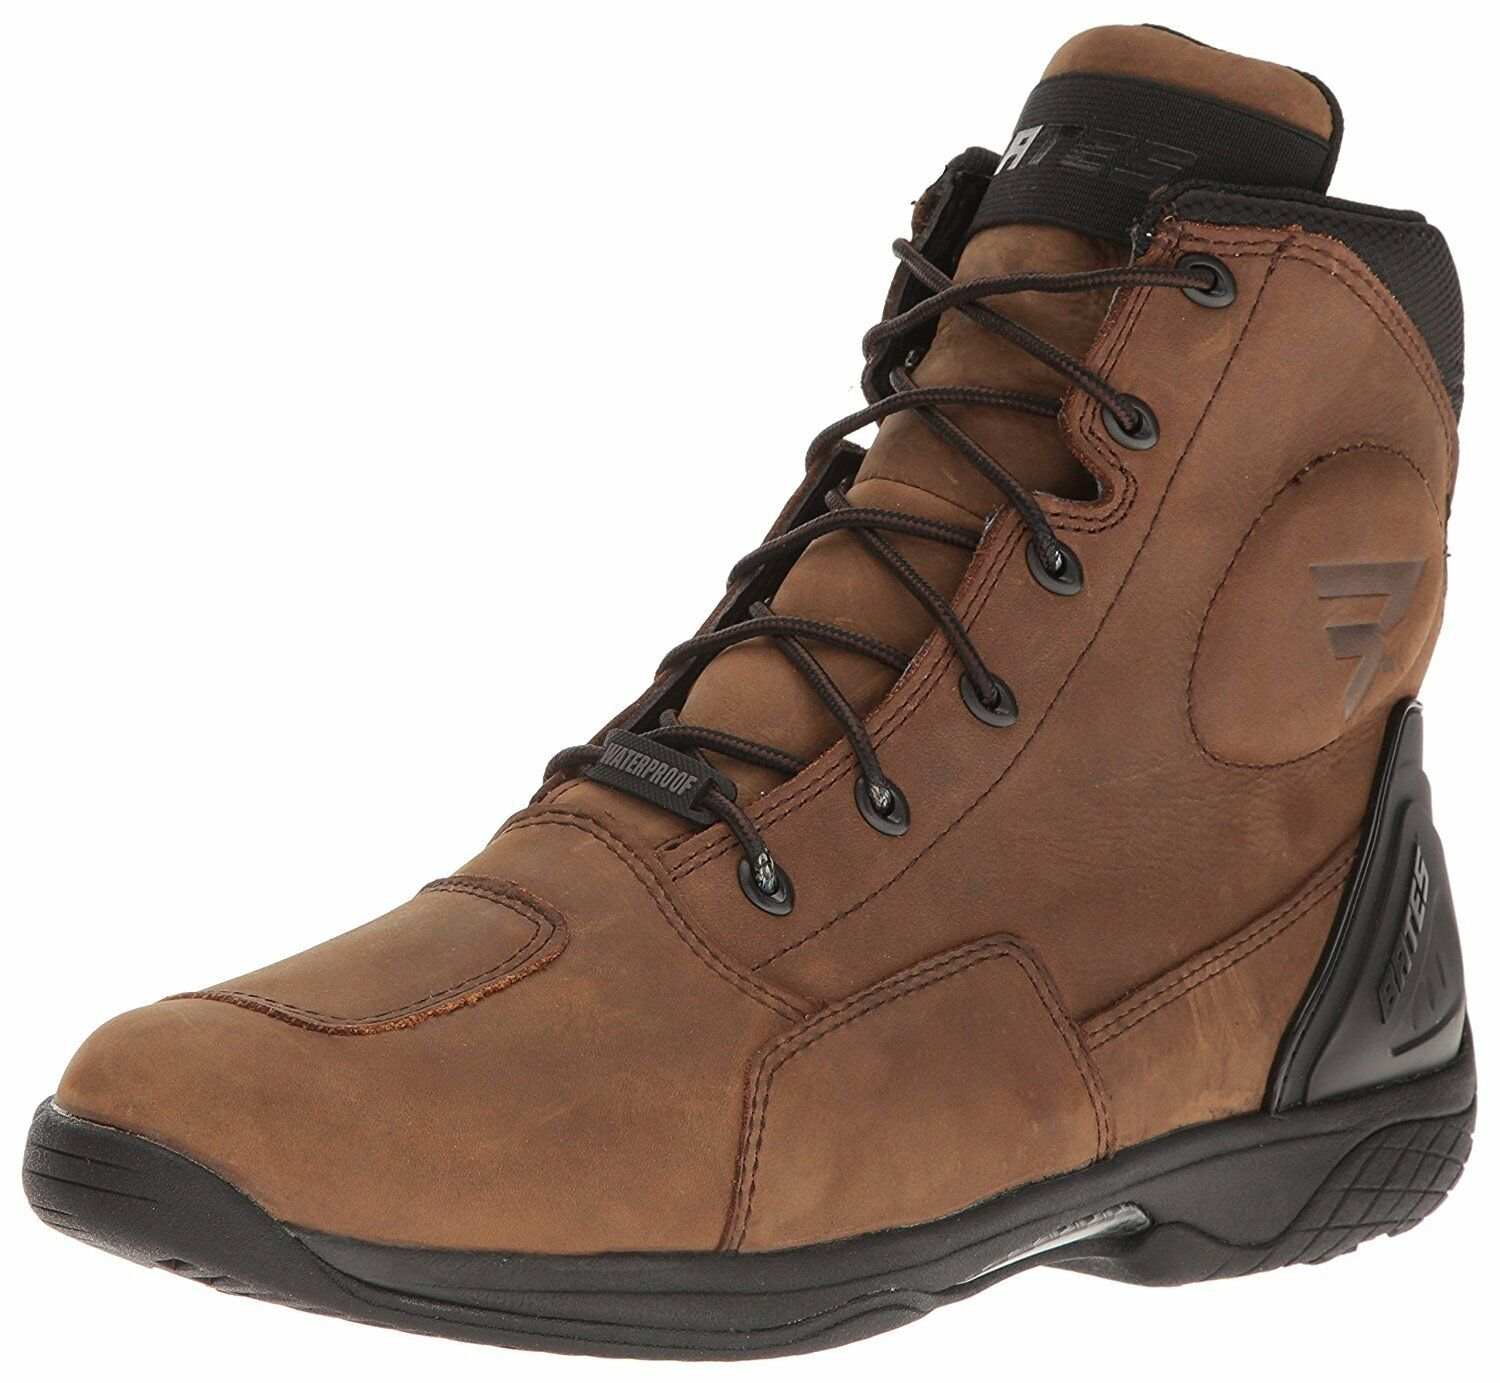 Bates 8802 Mens SP500 Adrenaline Work Boot FAST FREE USA SHIPPING